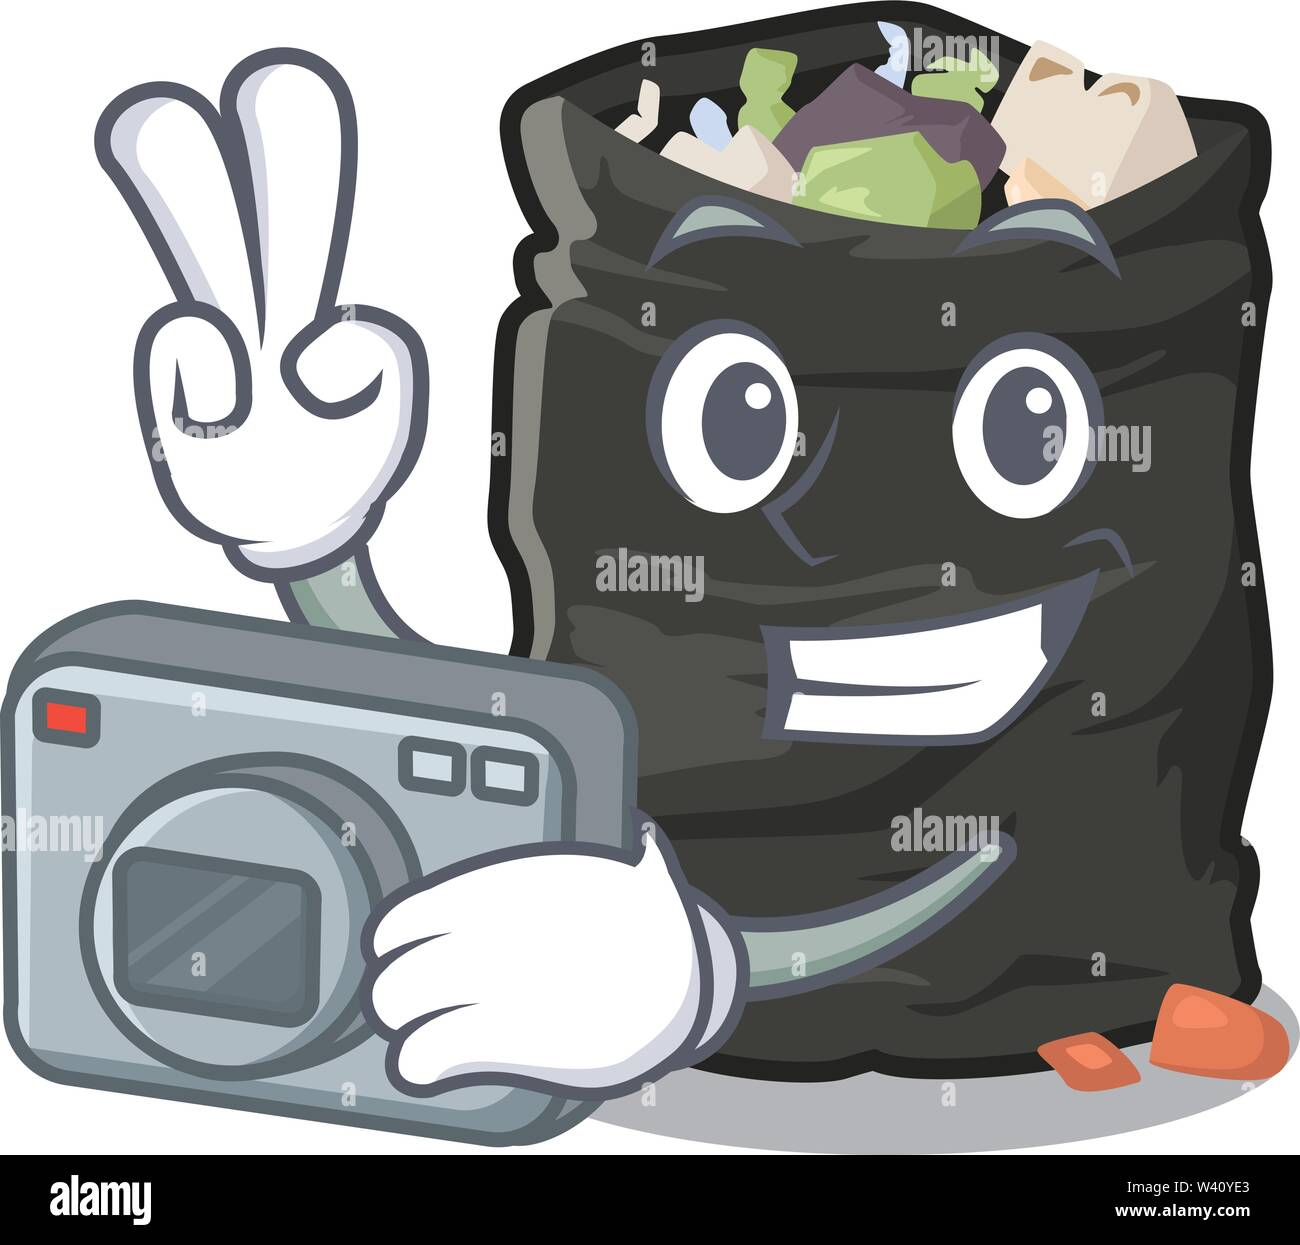 Photographer cartoon garbage bag next to table vector illustration - Stock Image